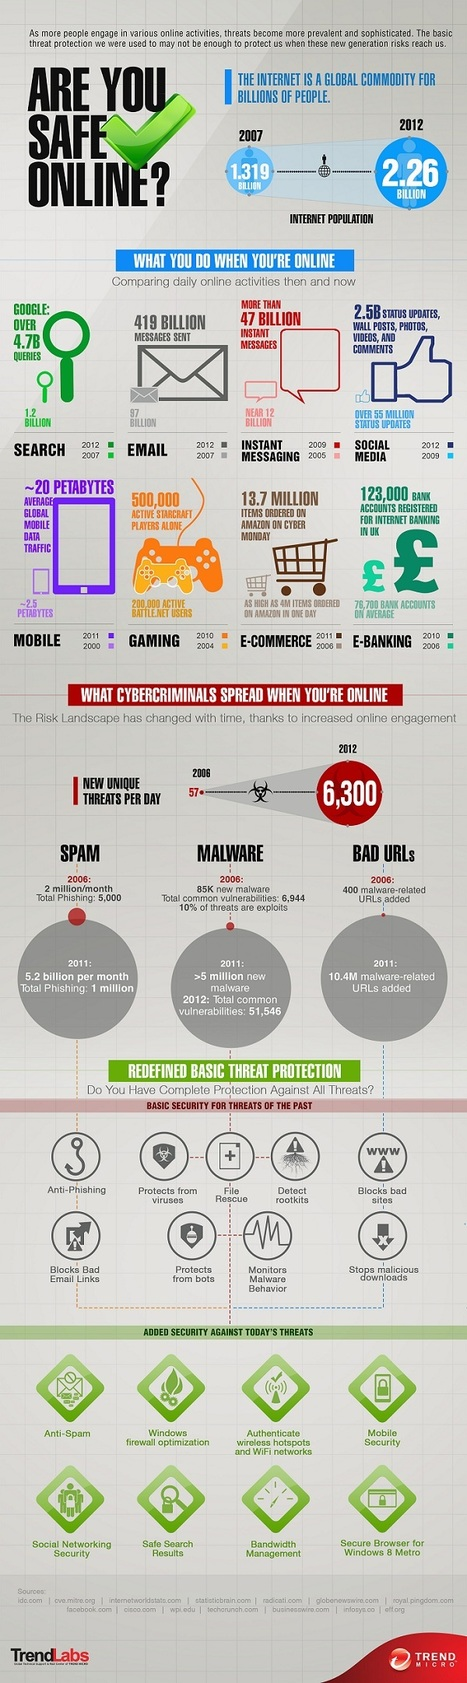 Are You Safe Online? [INFOGRAPHIC] | omnia mea mecum fero | Scoop.it